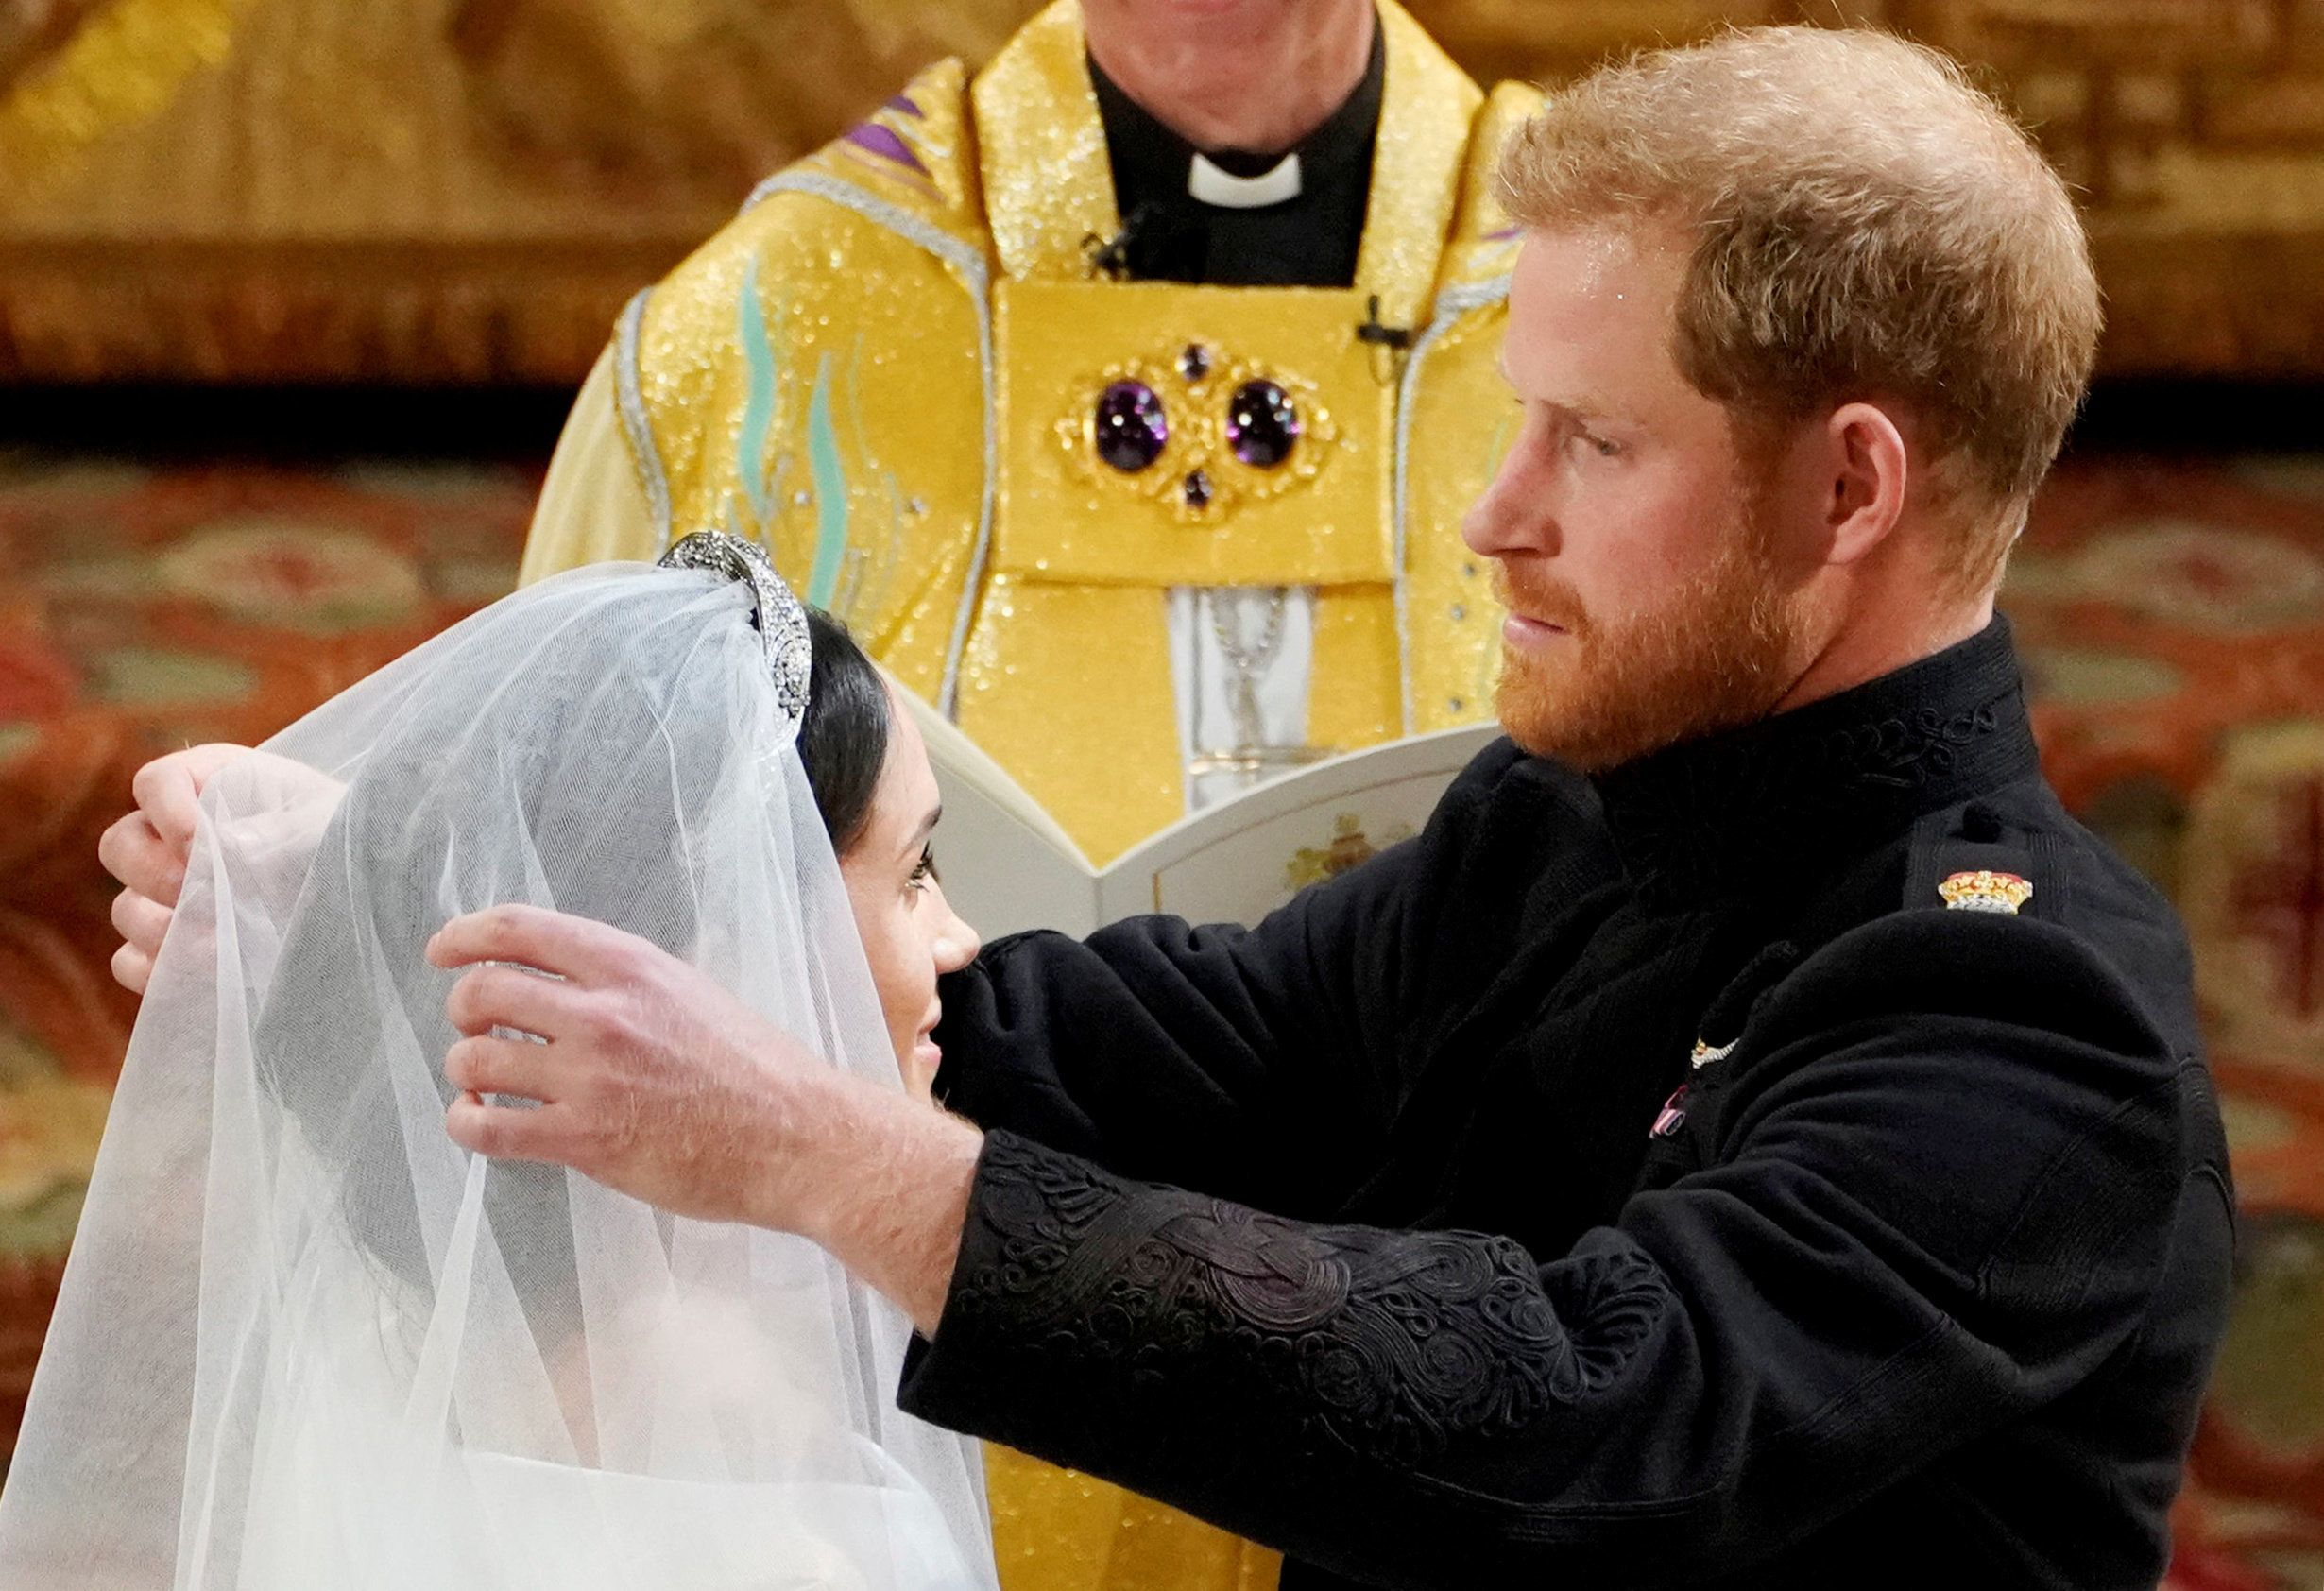 Prince Harry and Meghan Markle in St George's Chapel at Windsor Castle during their wedding service, conducted by the Archbishop of Canterbury Justin Welby in Windsor, Britain, May 19, 2018. Owen Humphreys/Pool via REUTERS     TPX IMAGES OF THE DAY